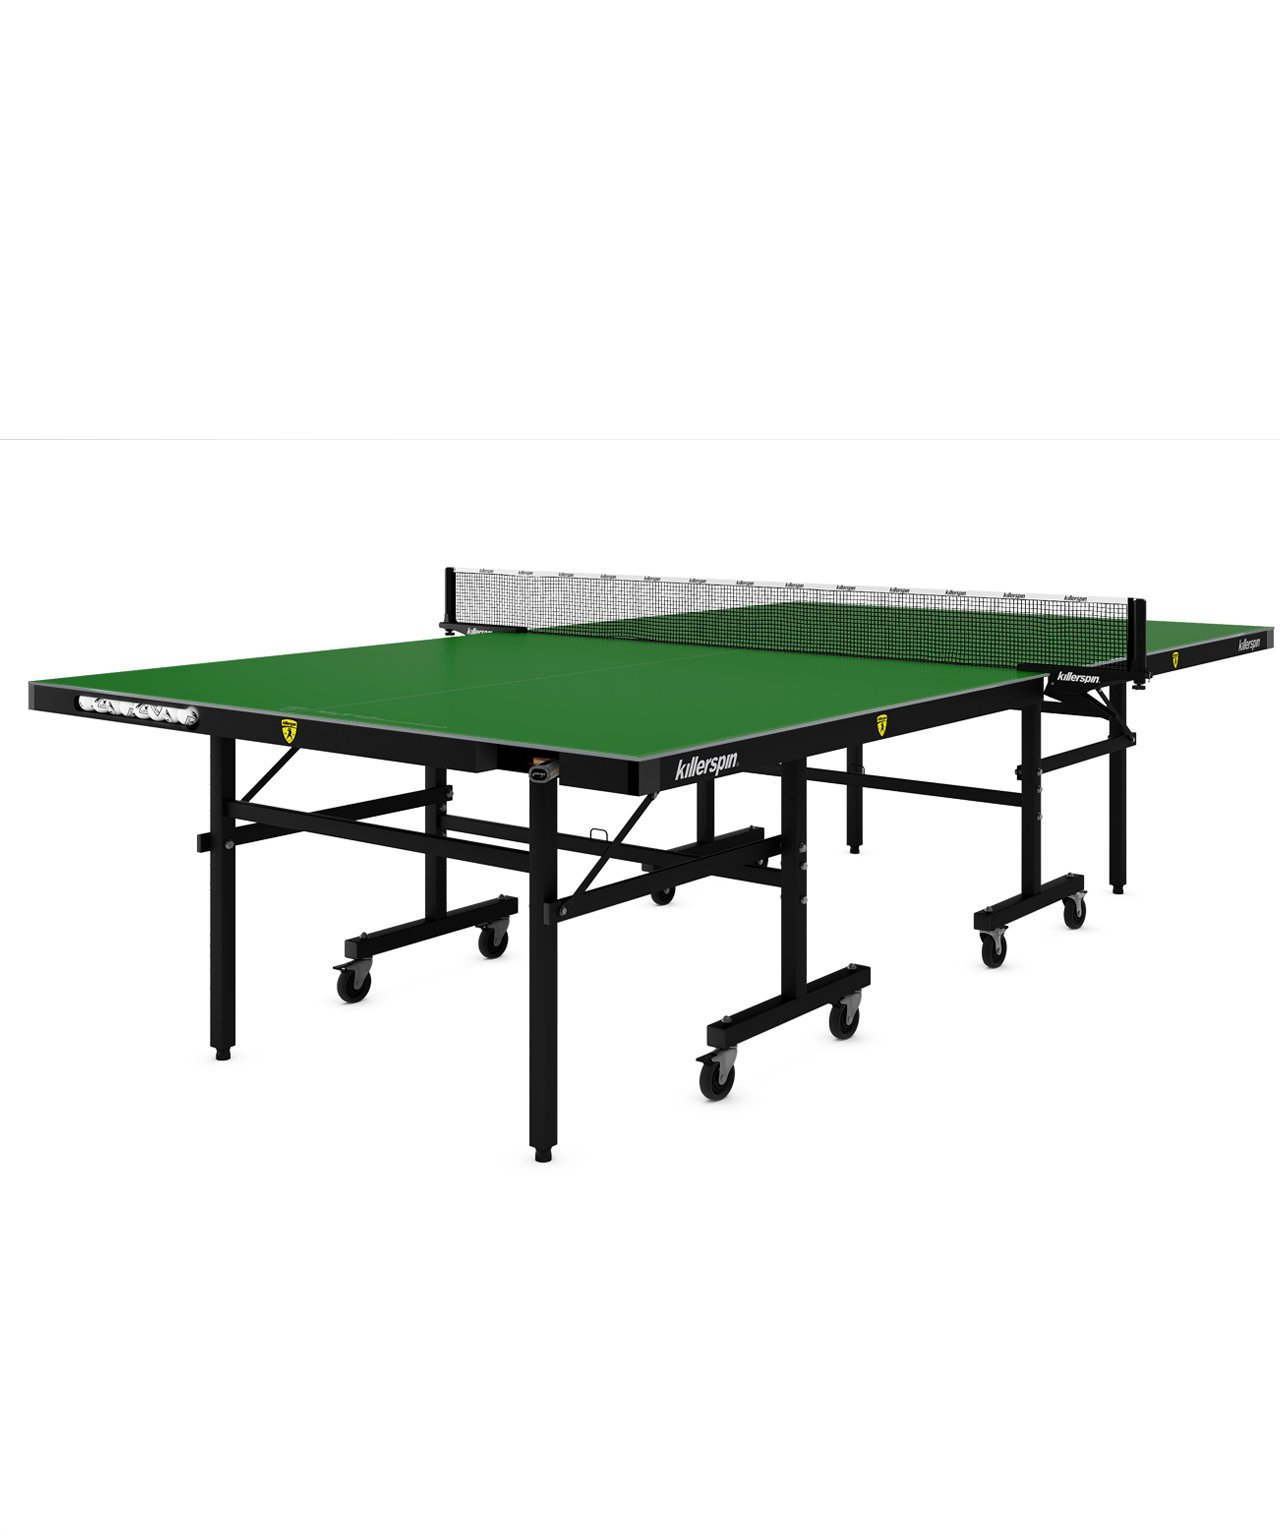 Killerspin MyT10 Folding Ping Pong Table| Adjustable Weather Resistant Table Tennis Table with Storage Pockets| Tournament Quality Construction for Outdoor Competition| Emeraldcoast (Green)